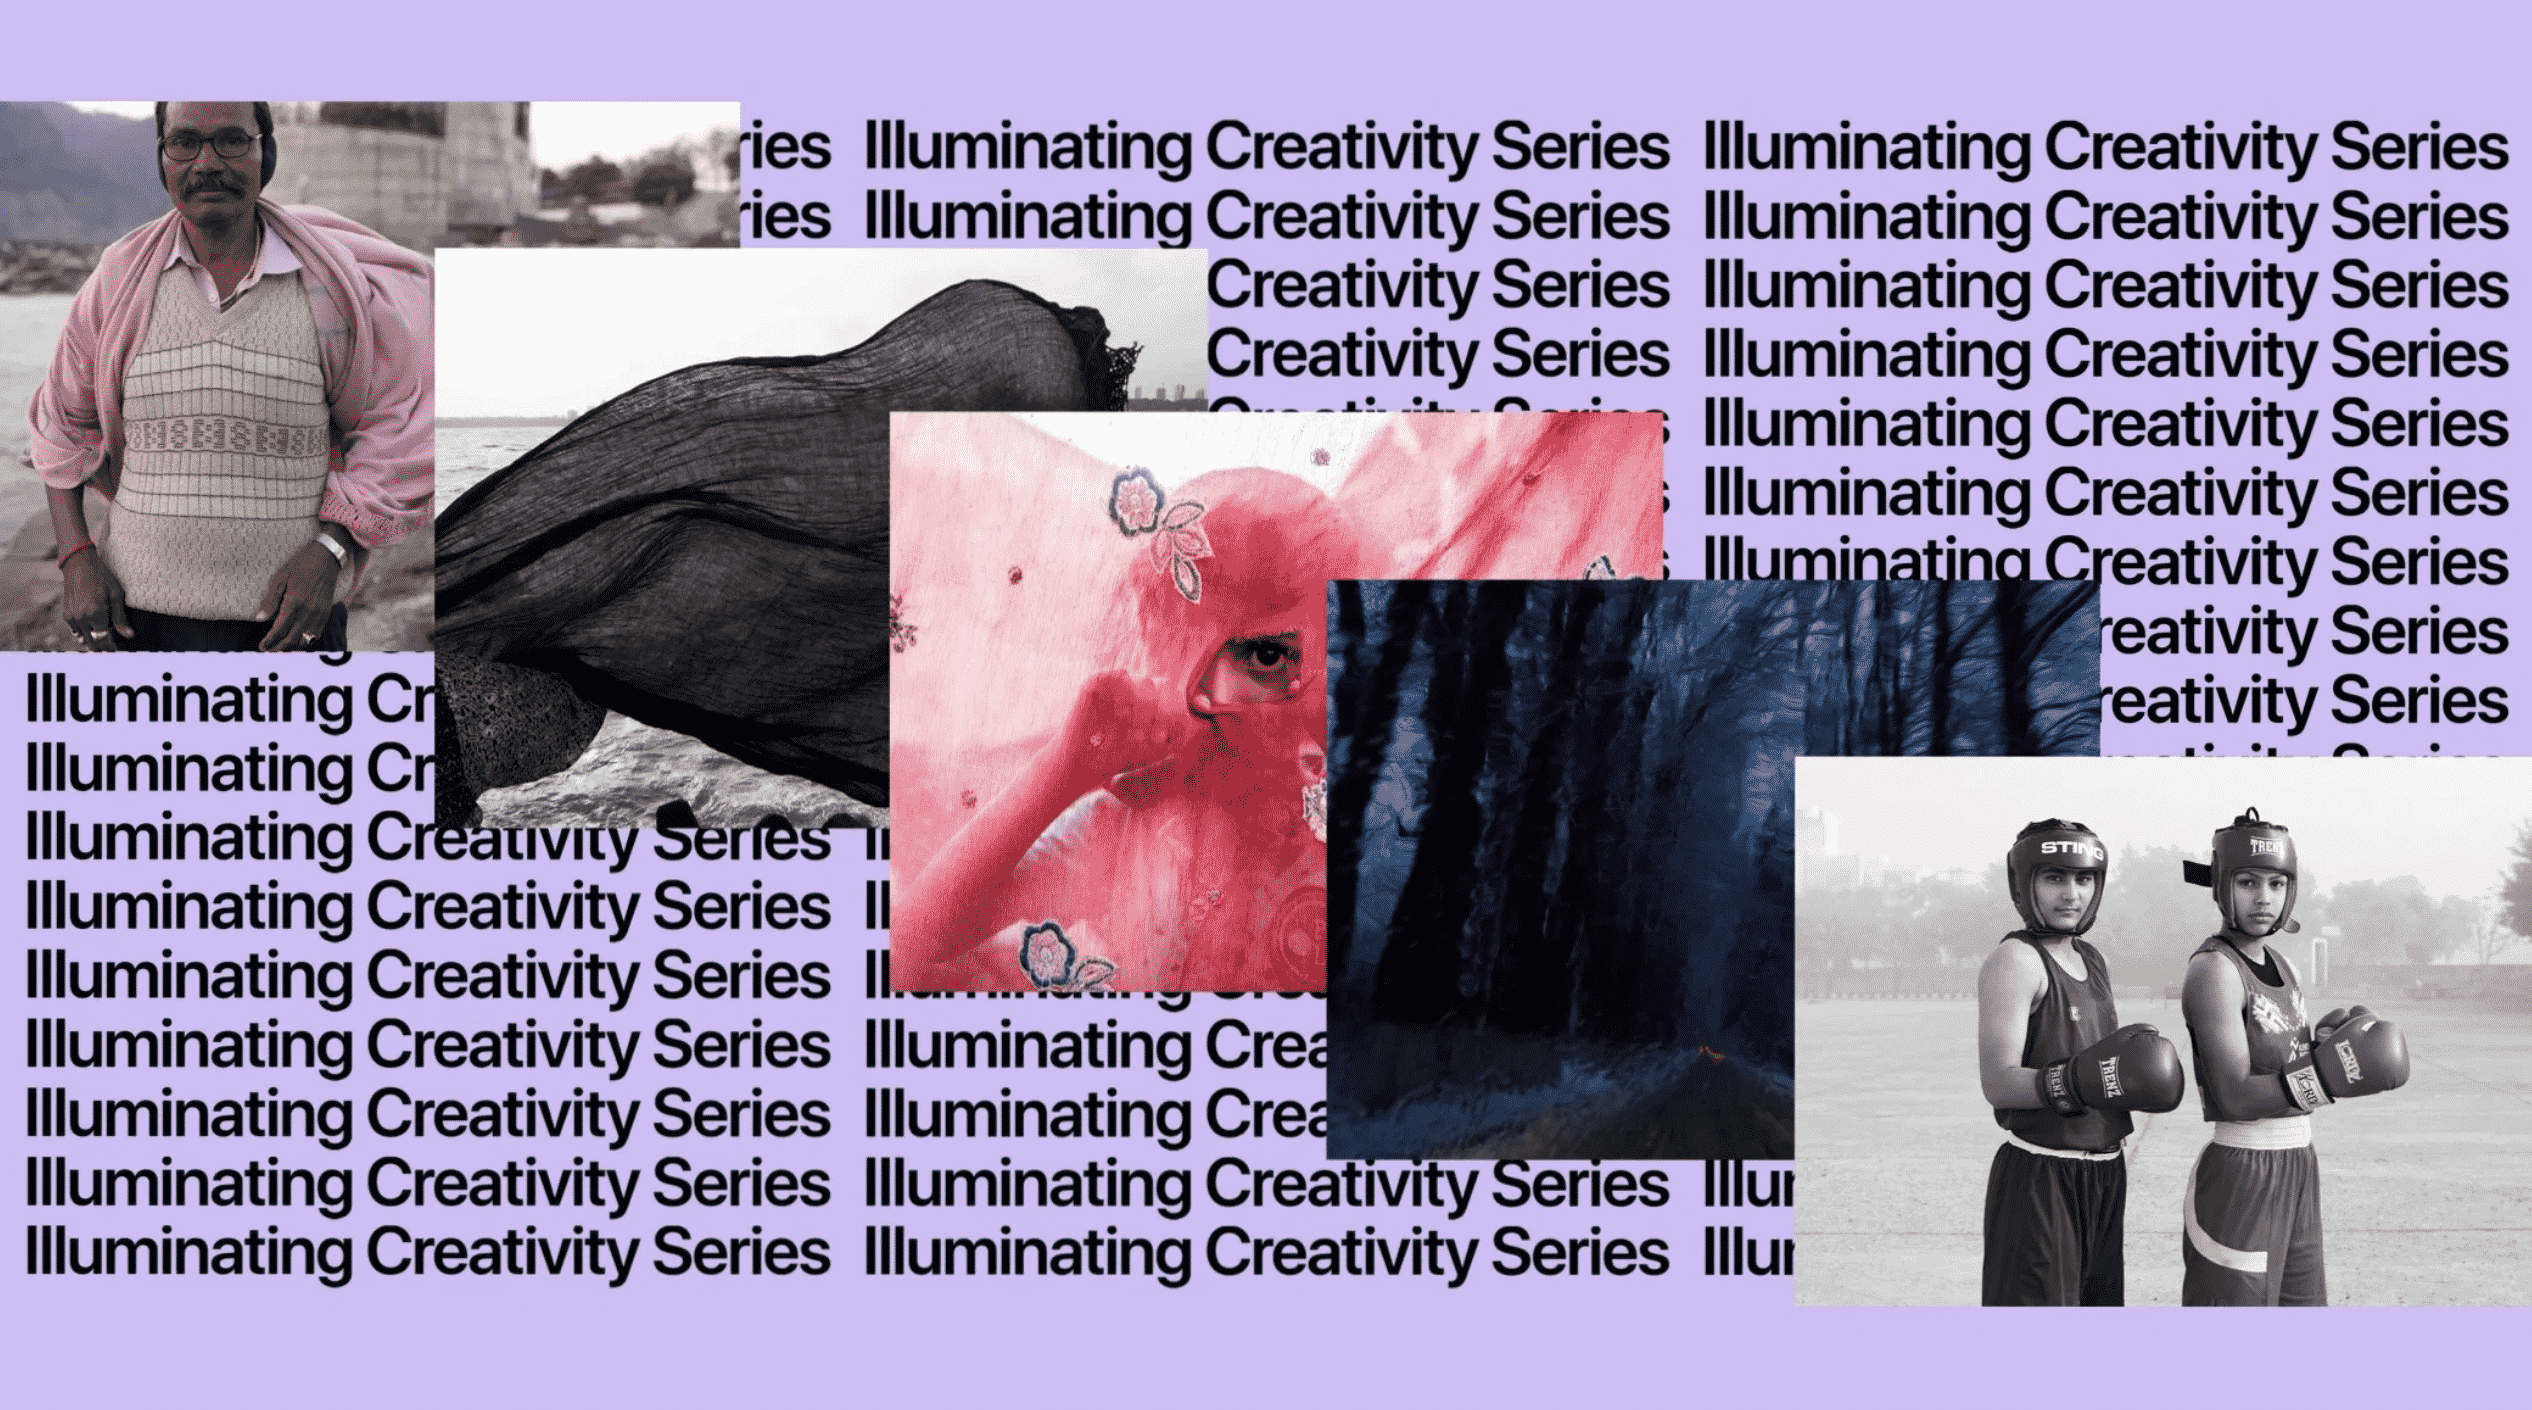 Illuminating Creativity Series